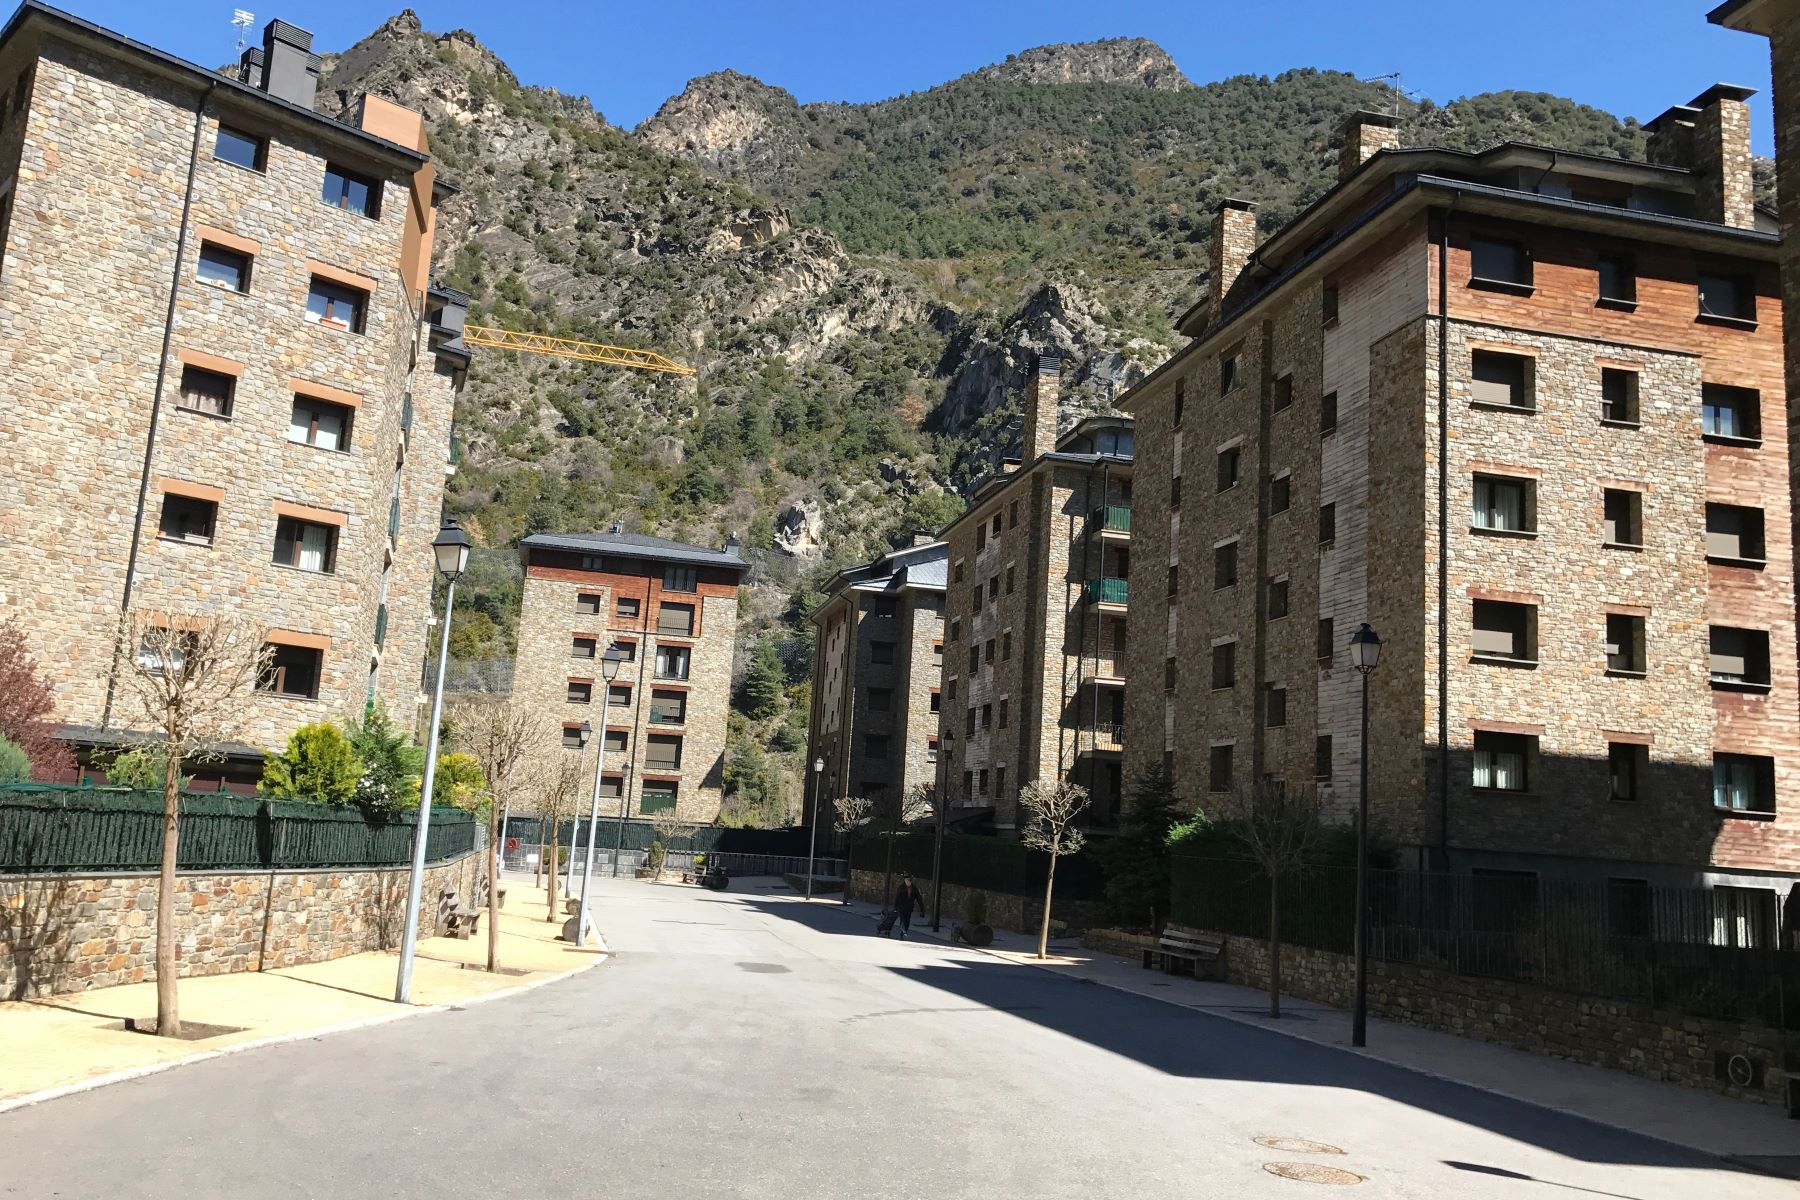 Apartments for Active at Attic for sale in Sant Julià de Lòria Sant Julia De Loria, Sant Julia De Loria AD600 Andorra